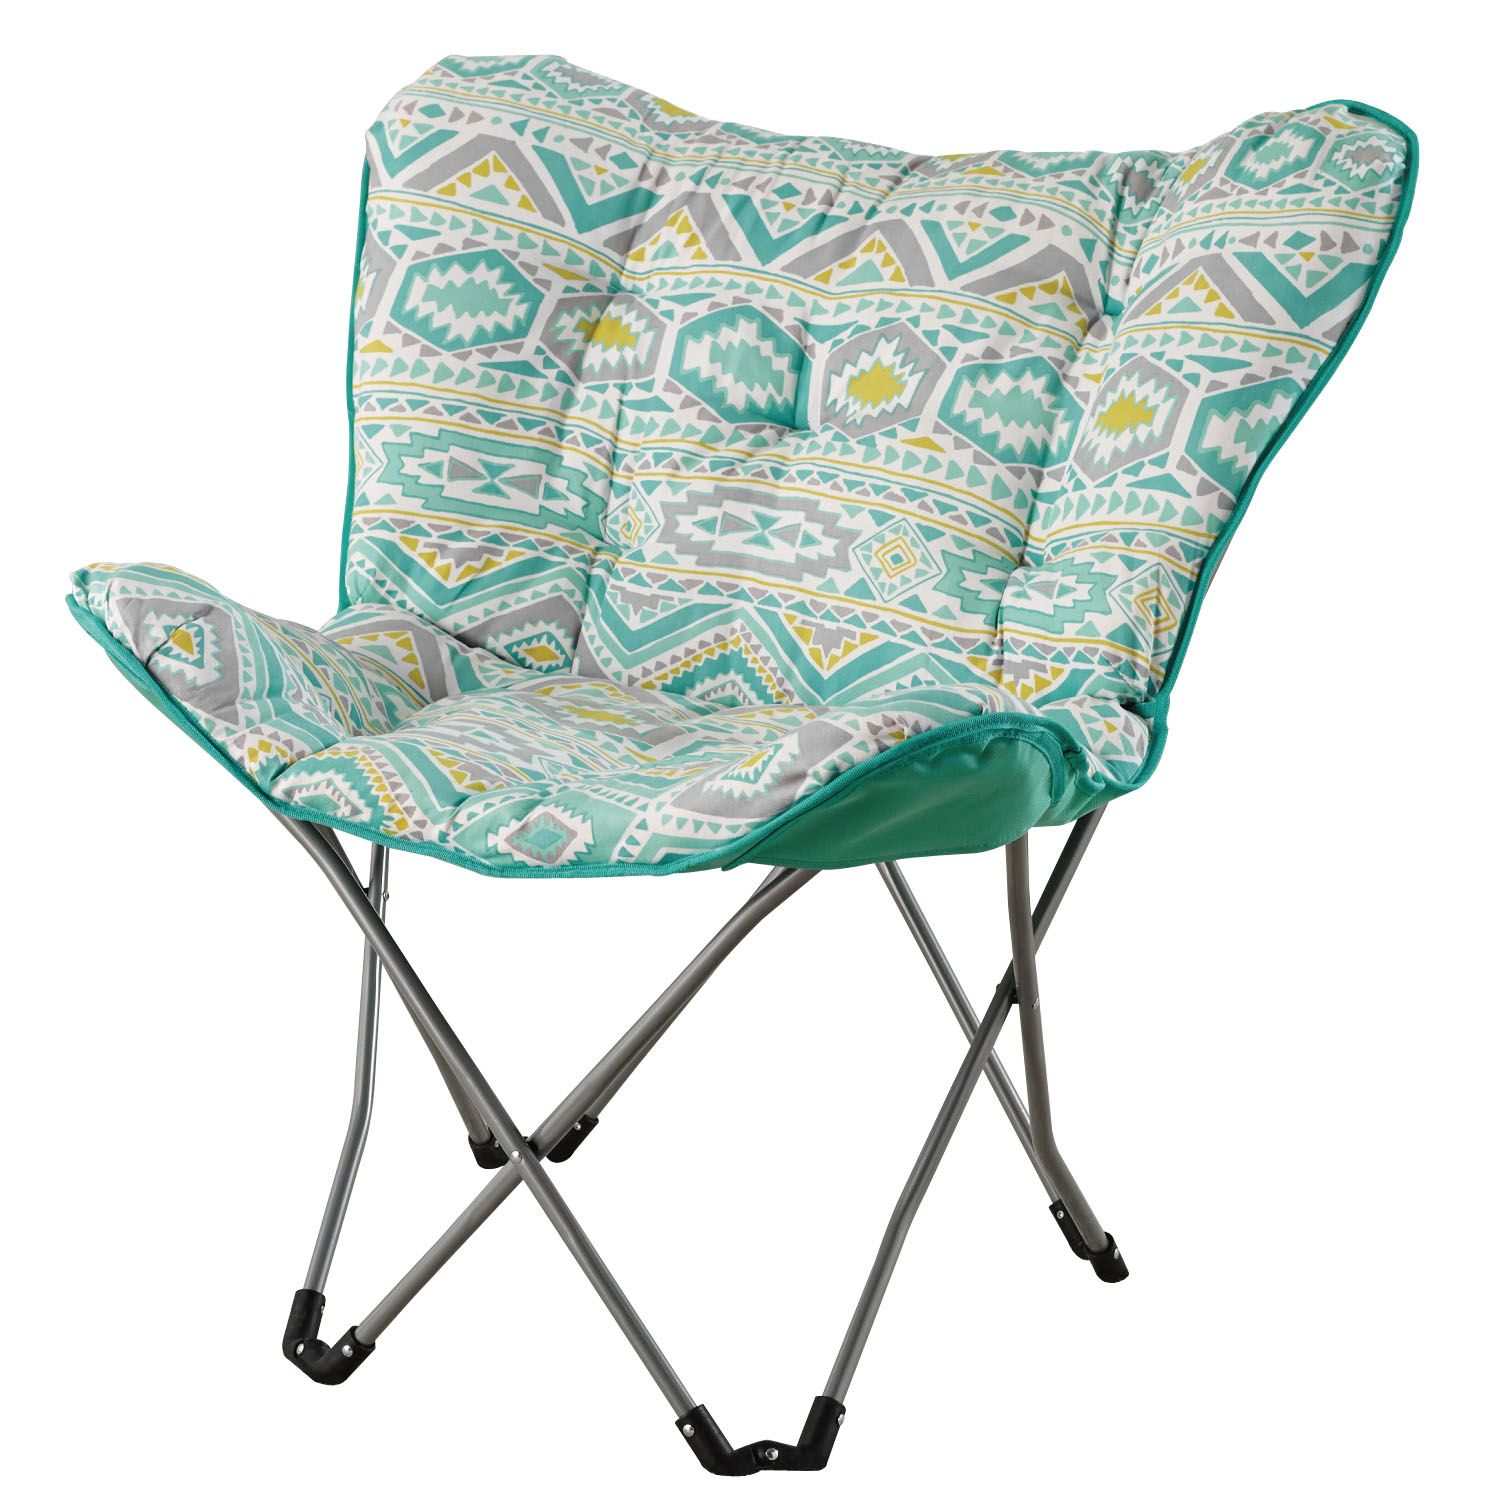 butterfly chair covers walmart office chairs austin dorm room décor can include comfort and style with this